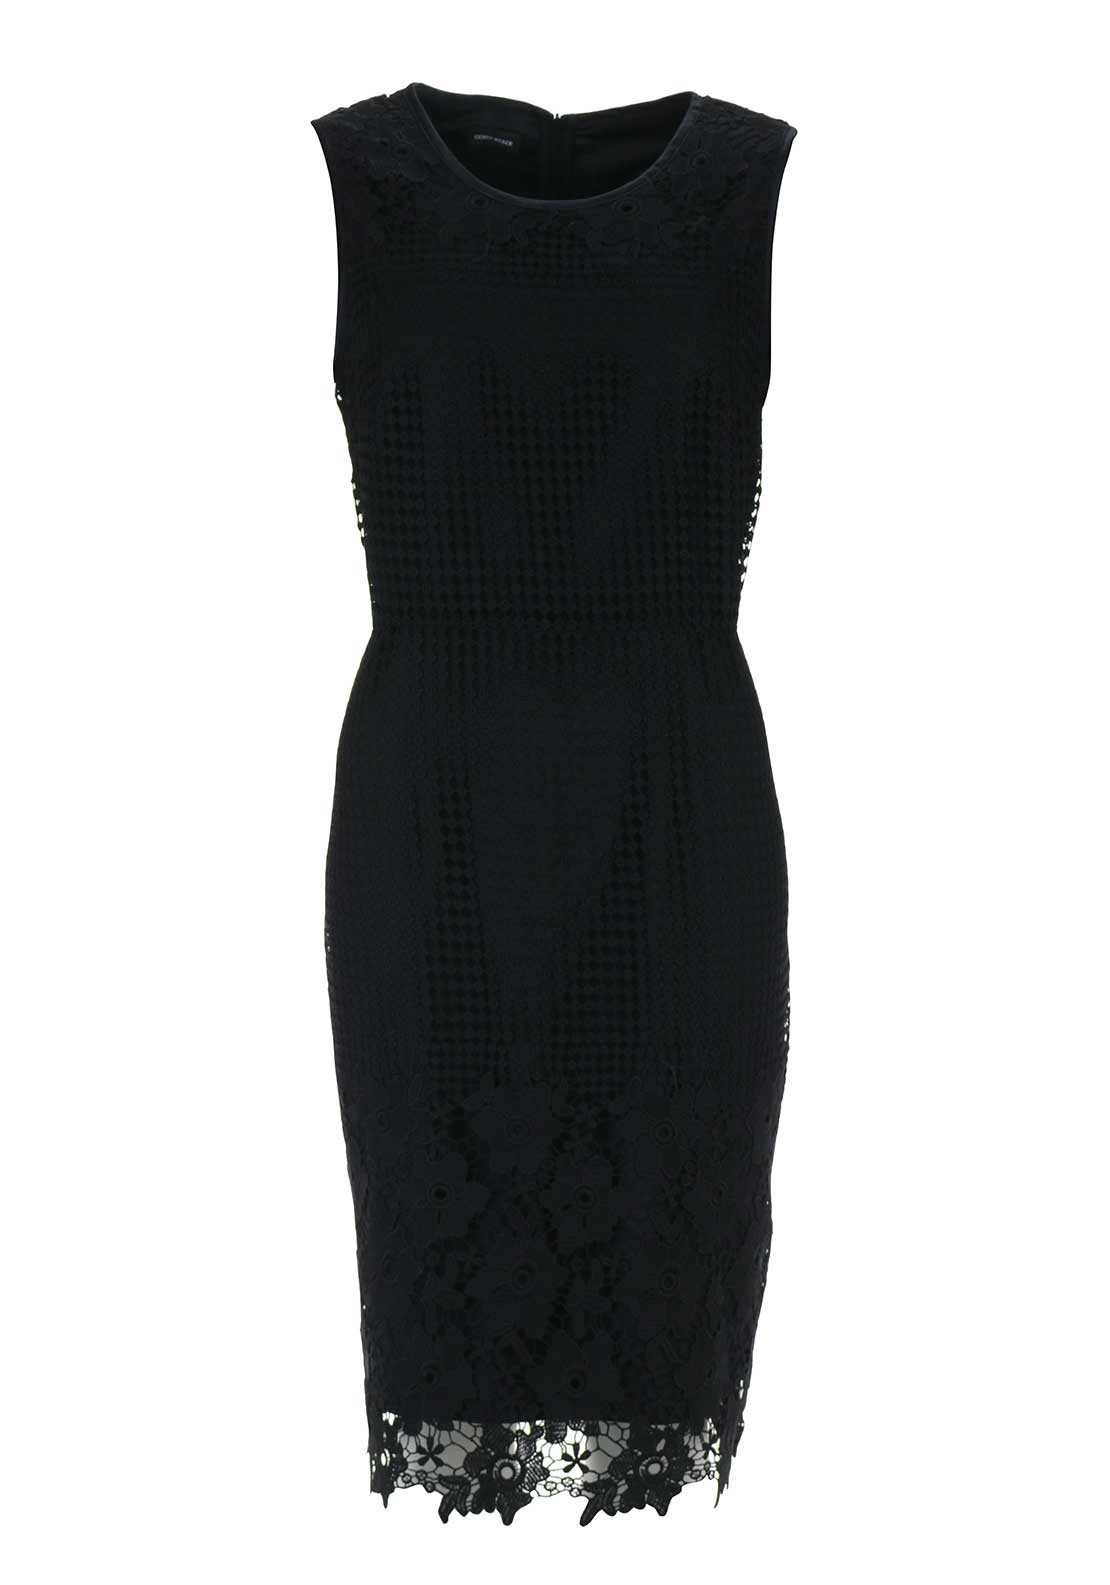 Gerry Weber Lace Overlay Pencil Dress, Black